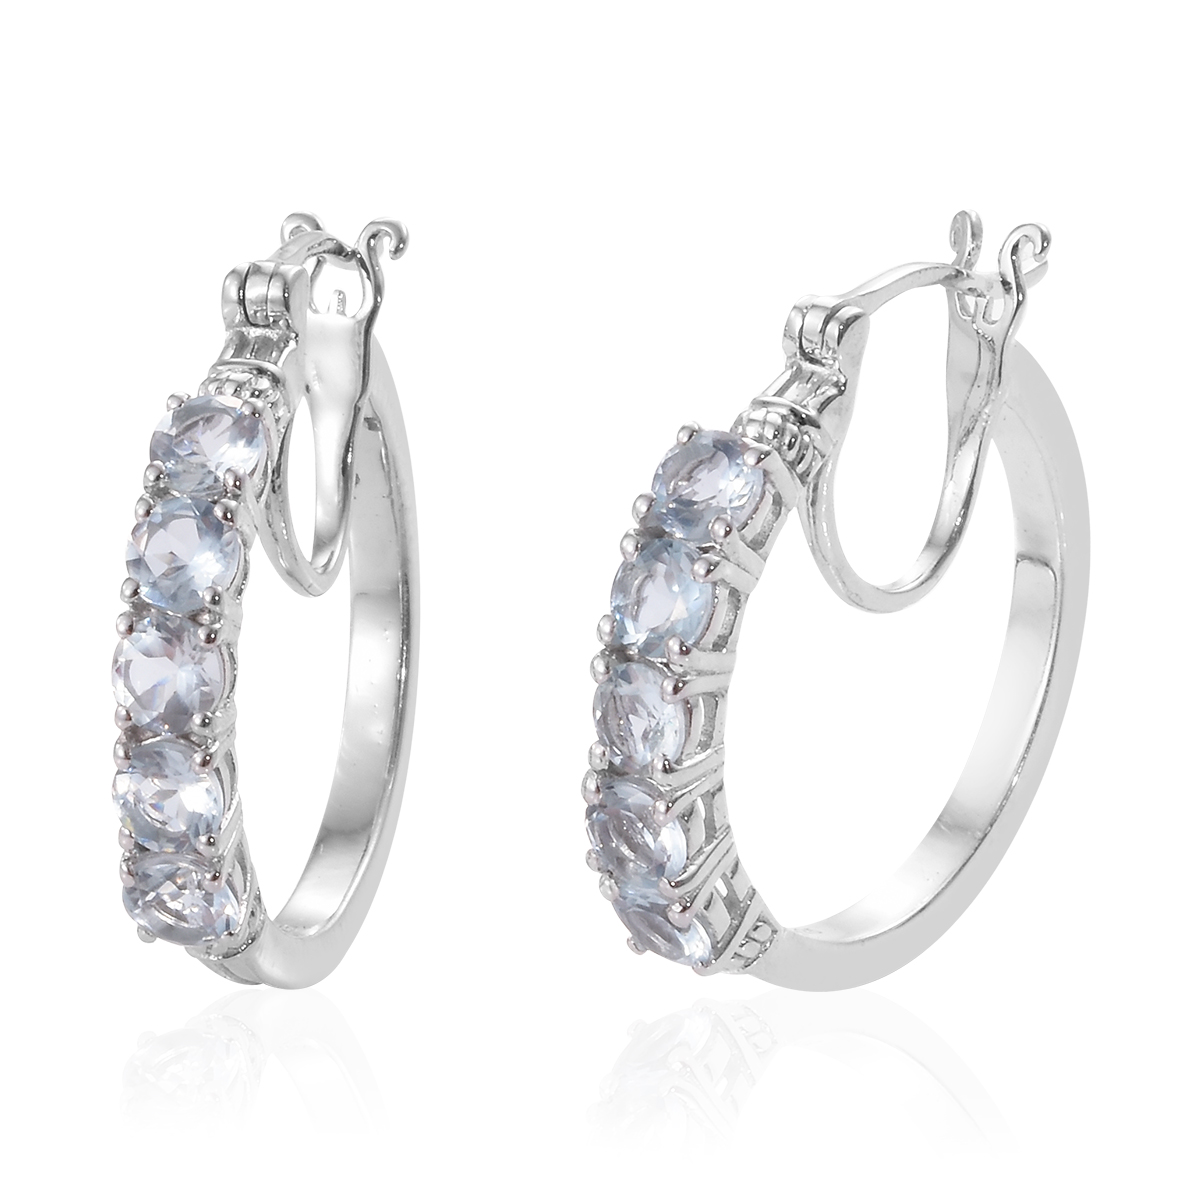 caf1bce90 Hoops Hoop Earrings Silver Round Aquamarine Gift Jewelry for Women Cttw 2.3